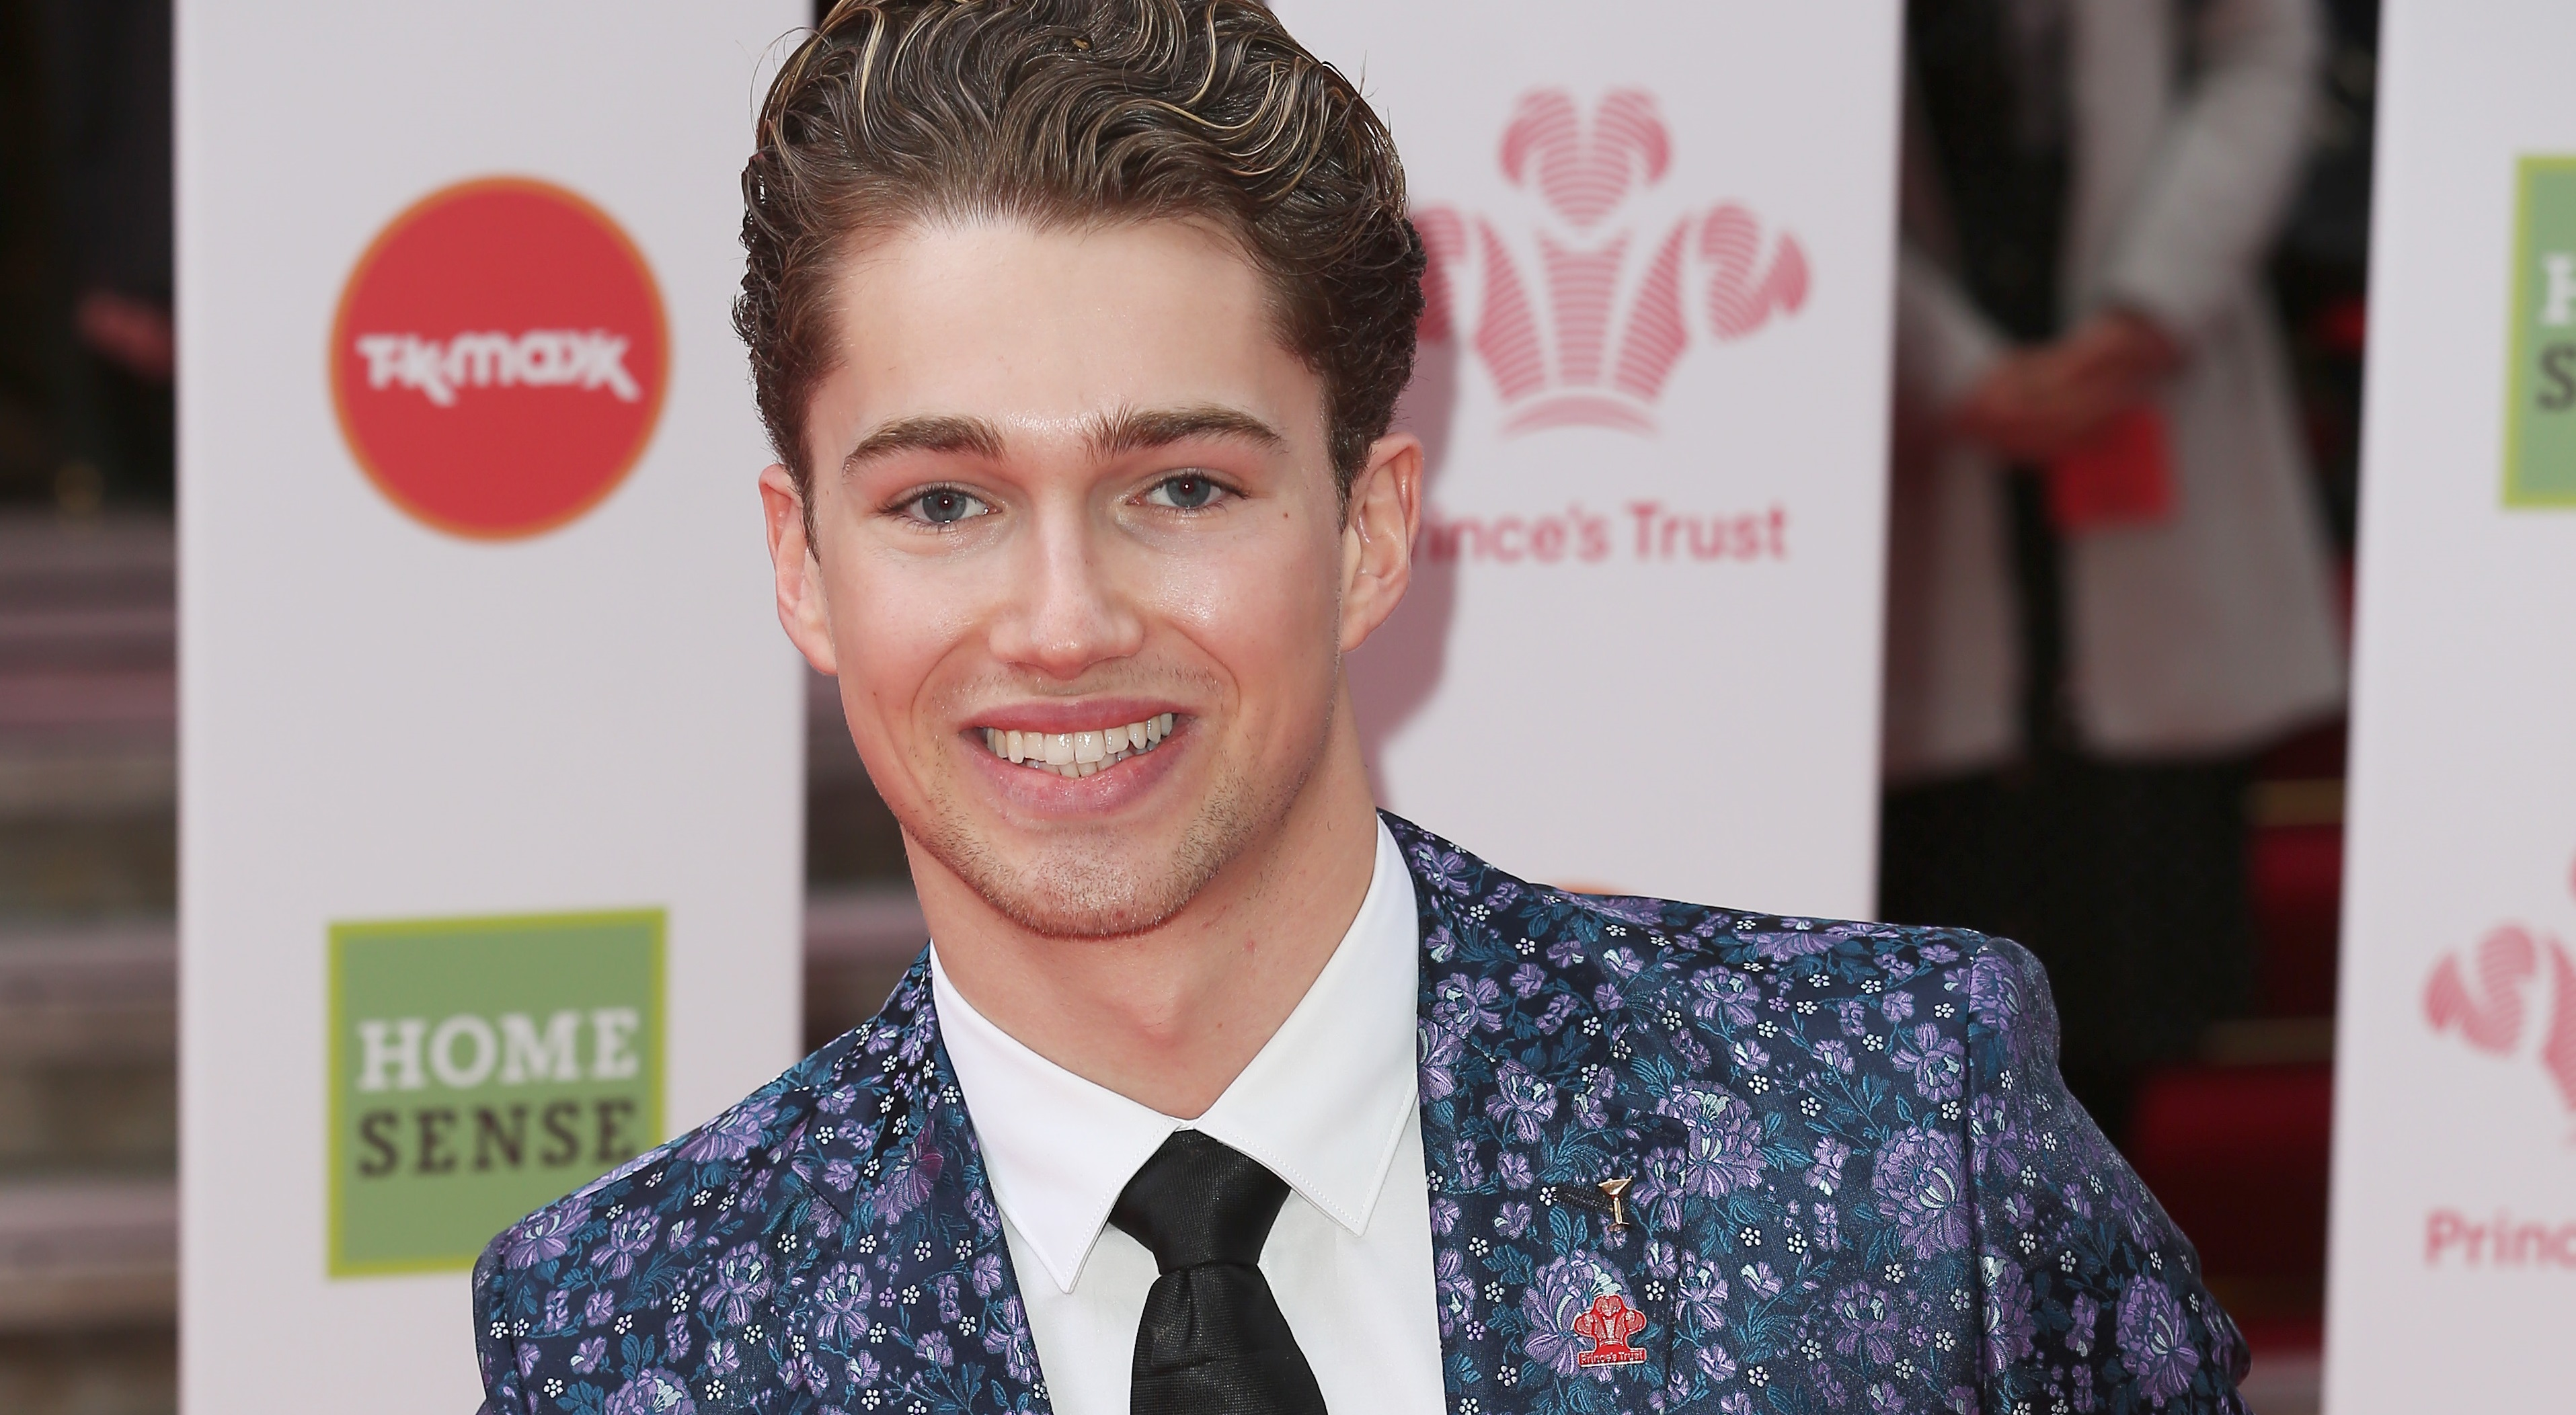 Strictly Come Dancing's AJ Pritchard shares first photo with girlfriend Abbie Quinnen